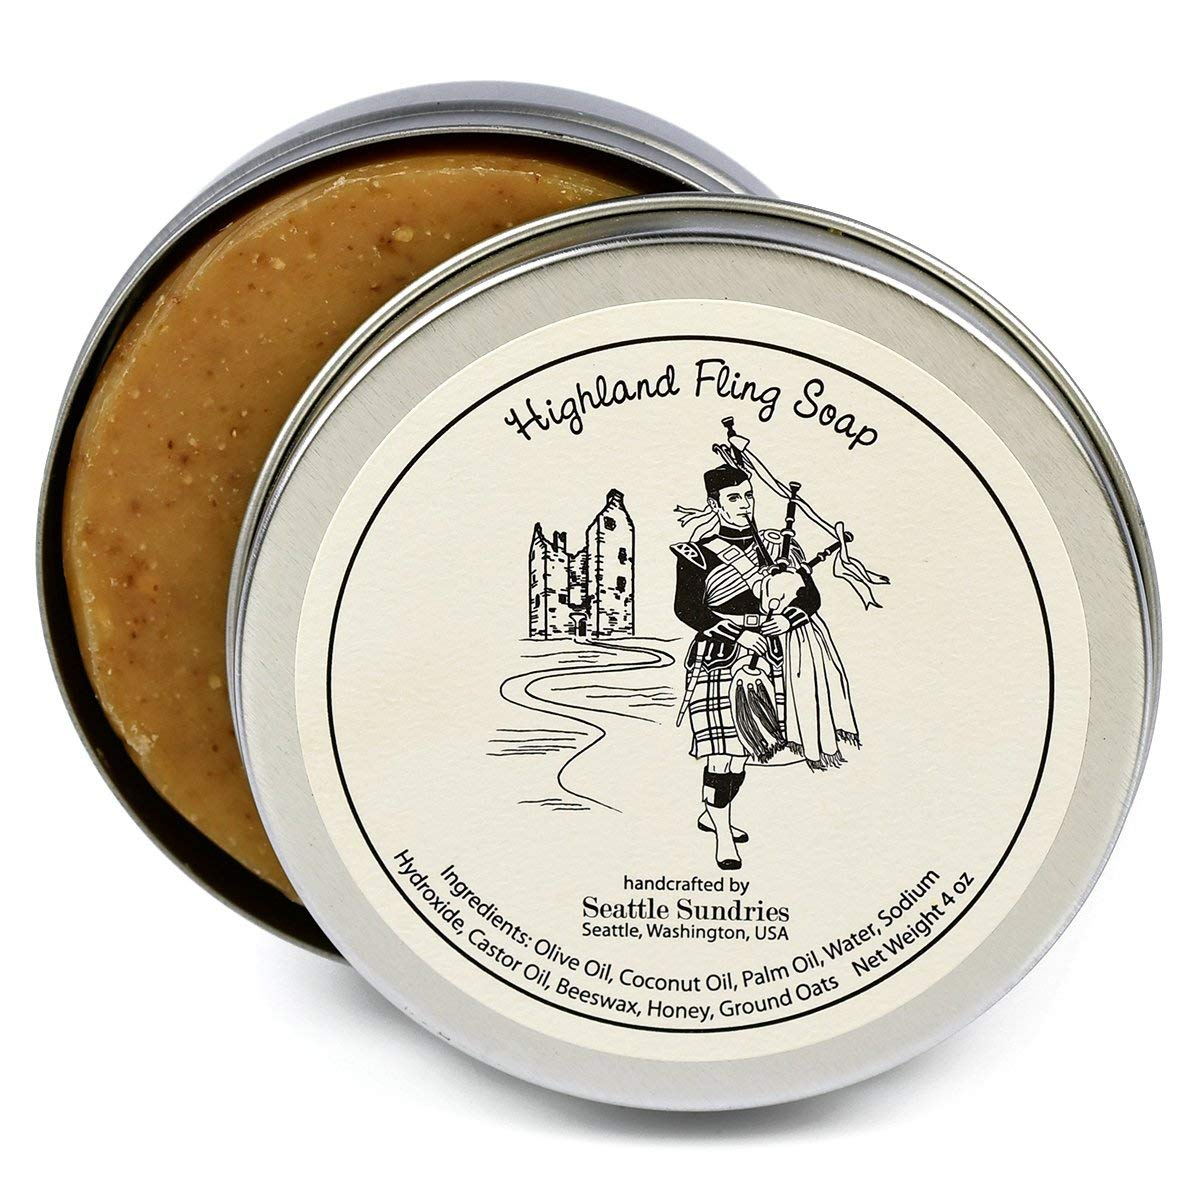 Highland Fling Soap-100% Natural Skin Care Bar. Unscented, with Honey & Oatmeal. One 4 oz Bar in a Handy Travel Gift Tin. Great For Scottish Bagpipe Lovers.